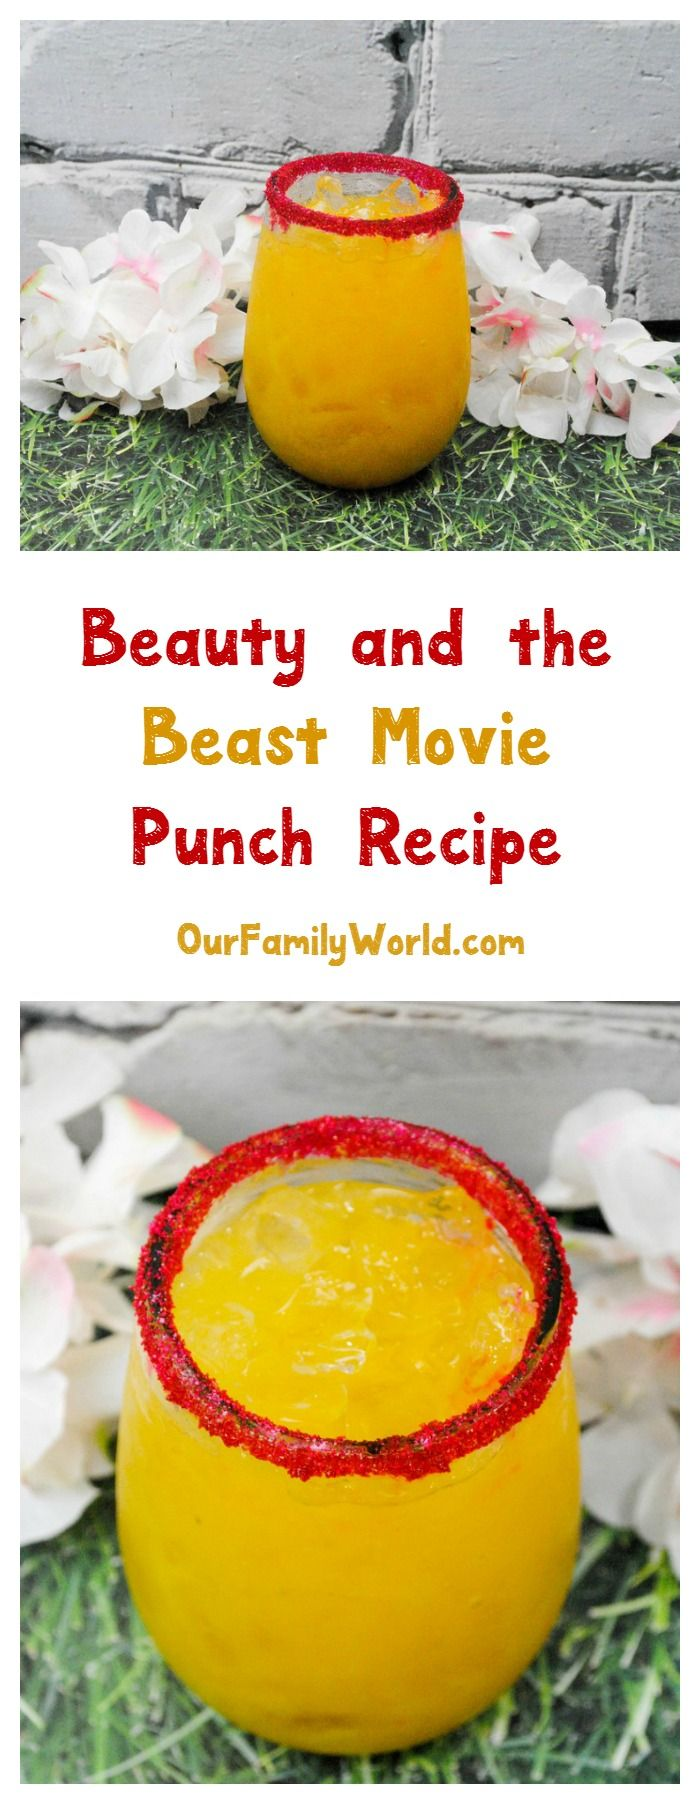 Looking for a kid-friendly non-alcoholic drink recipe that celebrates your love of all things Disney? Whip up this super easy Beauty and the Beast movie punch!